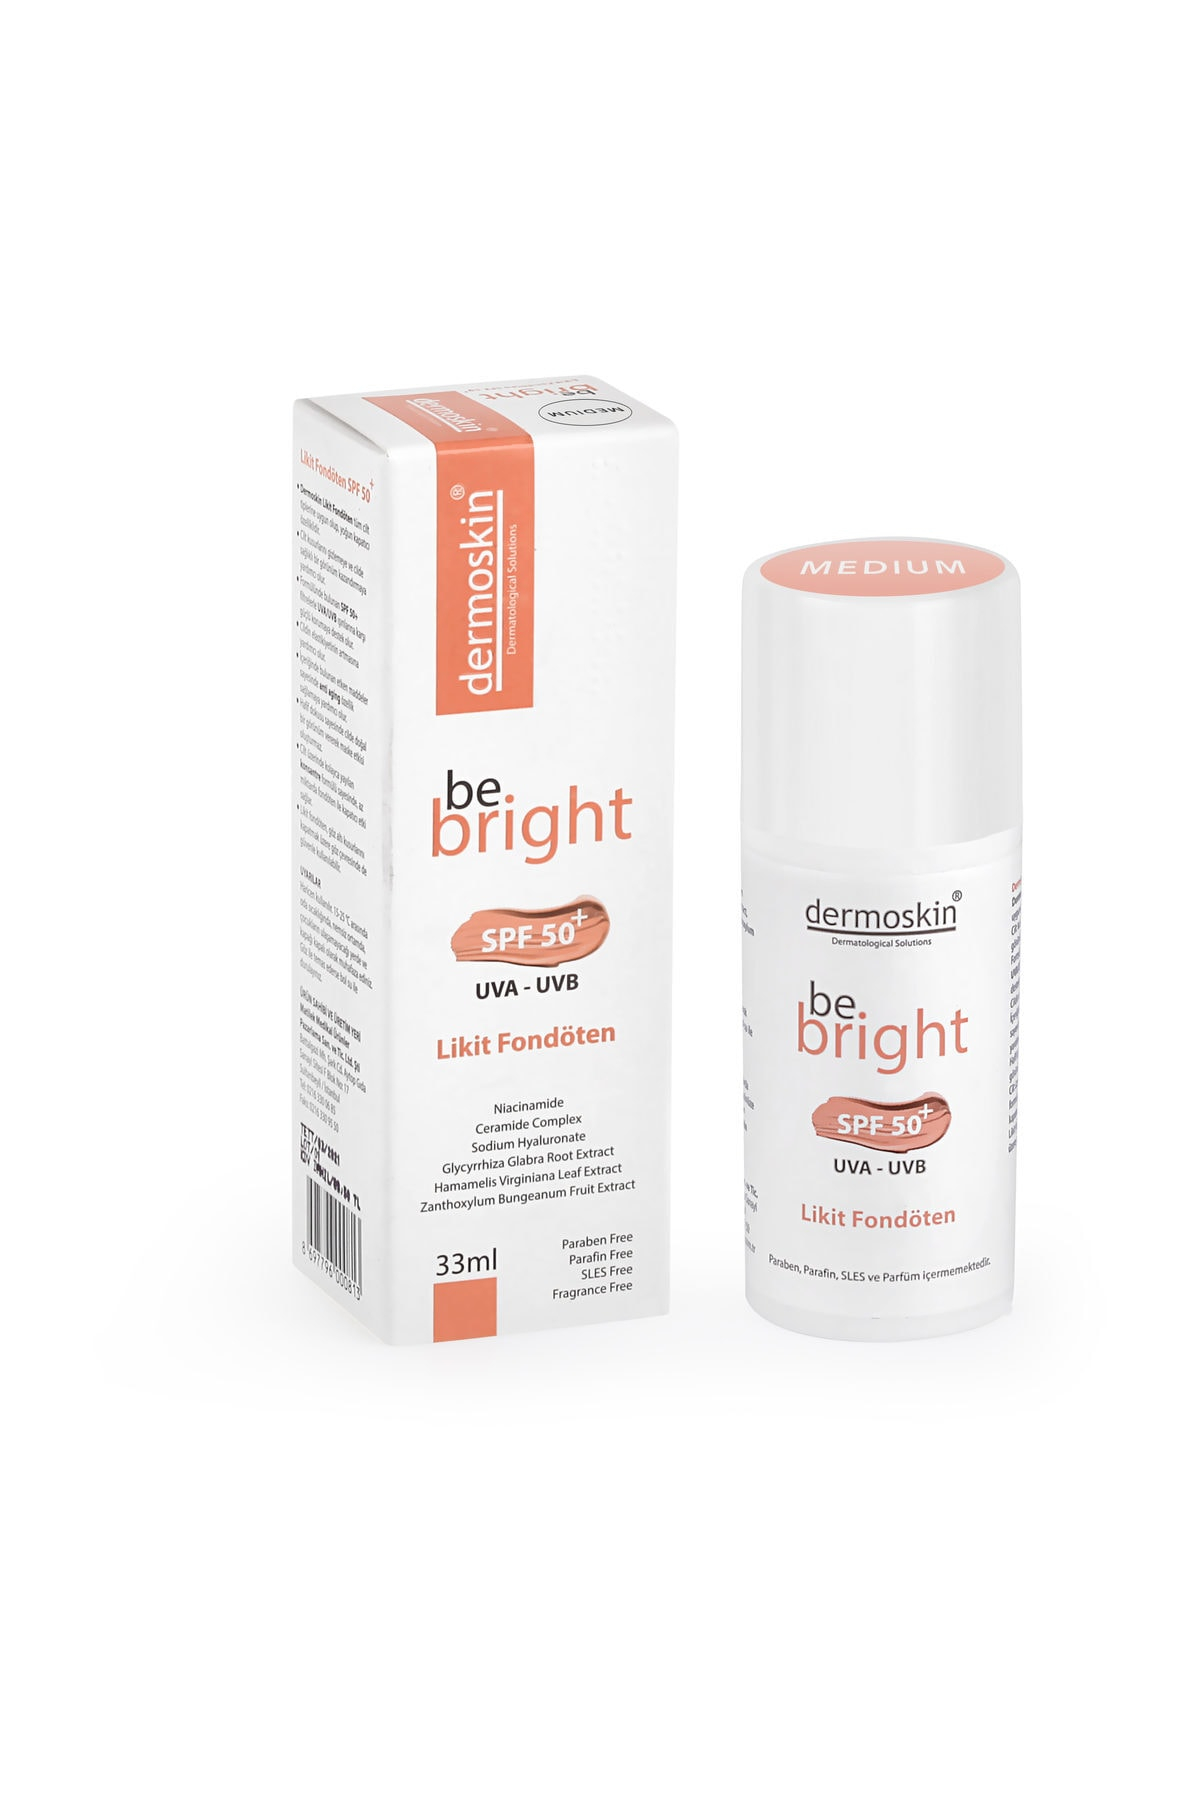 Dermoskin Be Bright SPF50+ Likit Fondöten Medium 33 ml 8697796000844 1